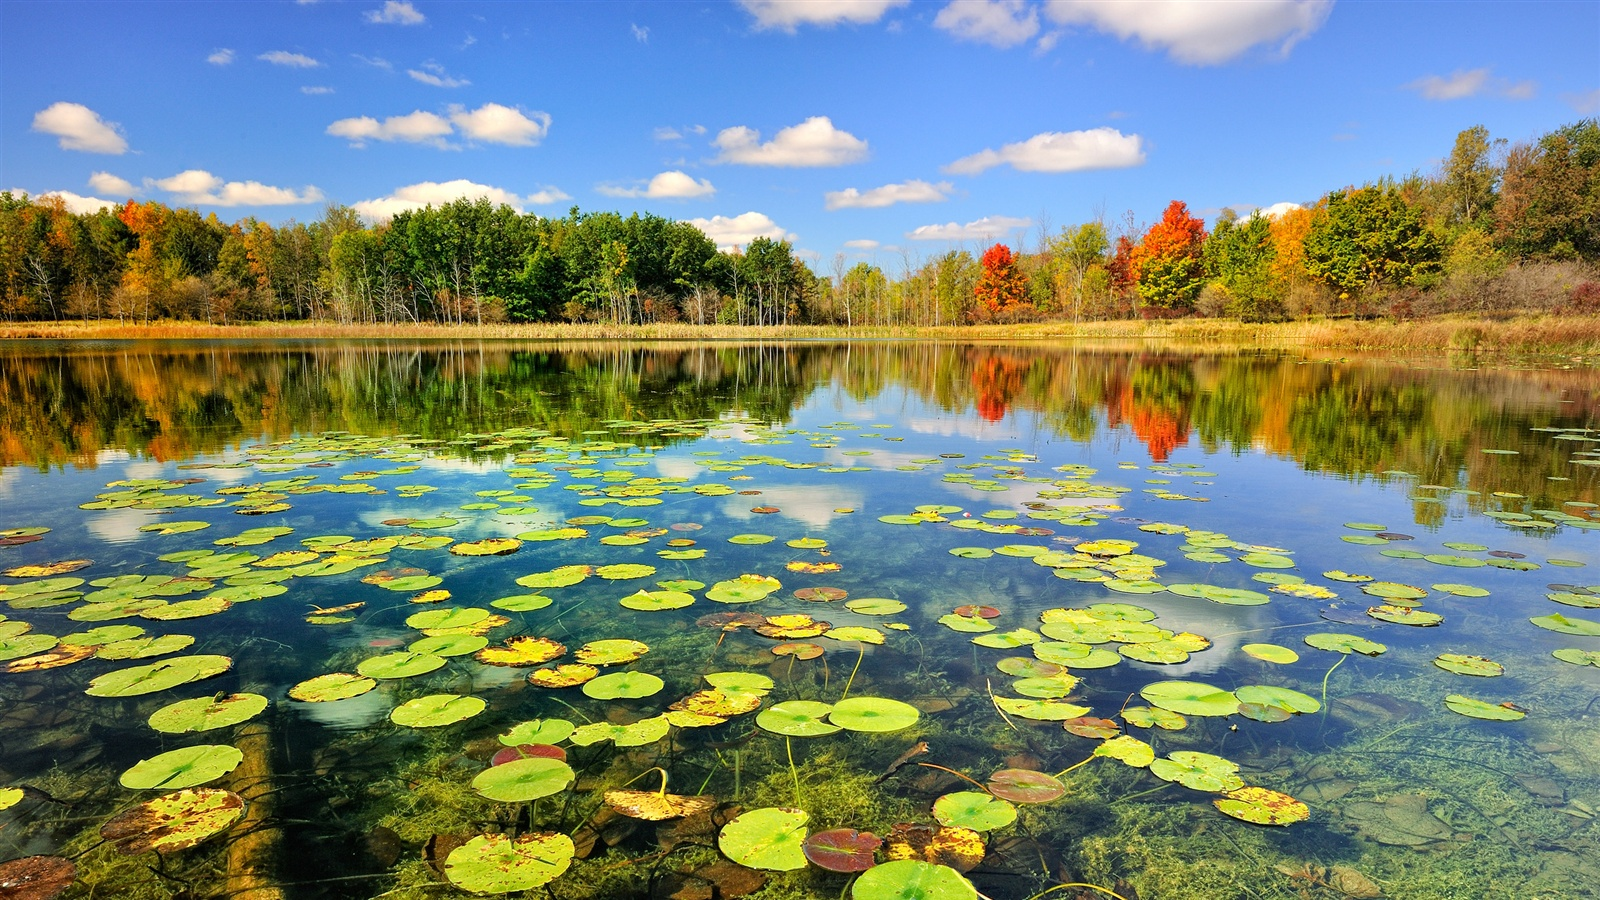 wallpaper nature autumn forest lake 2560x1600 hd picture, image